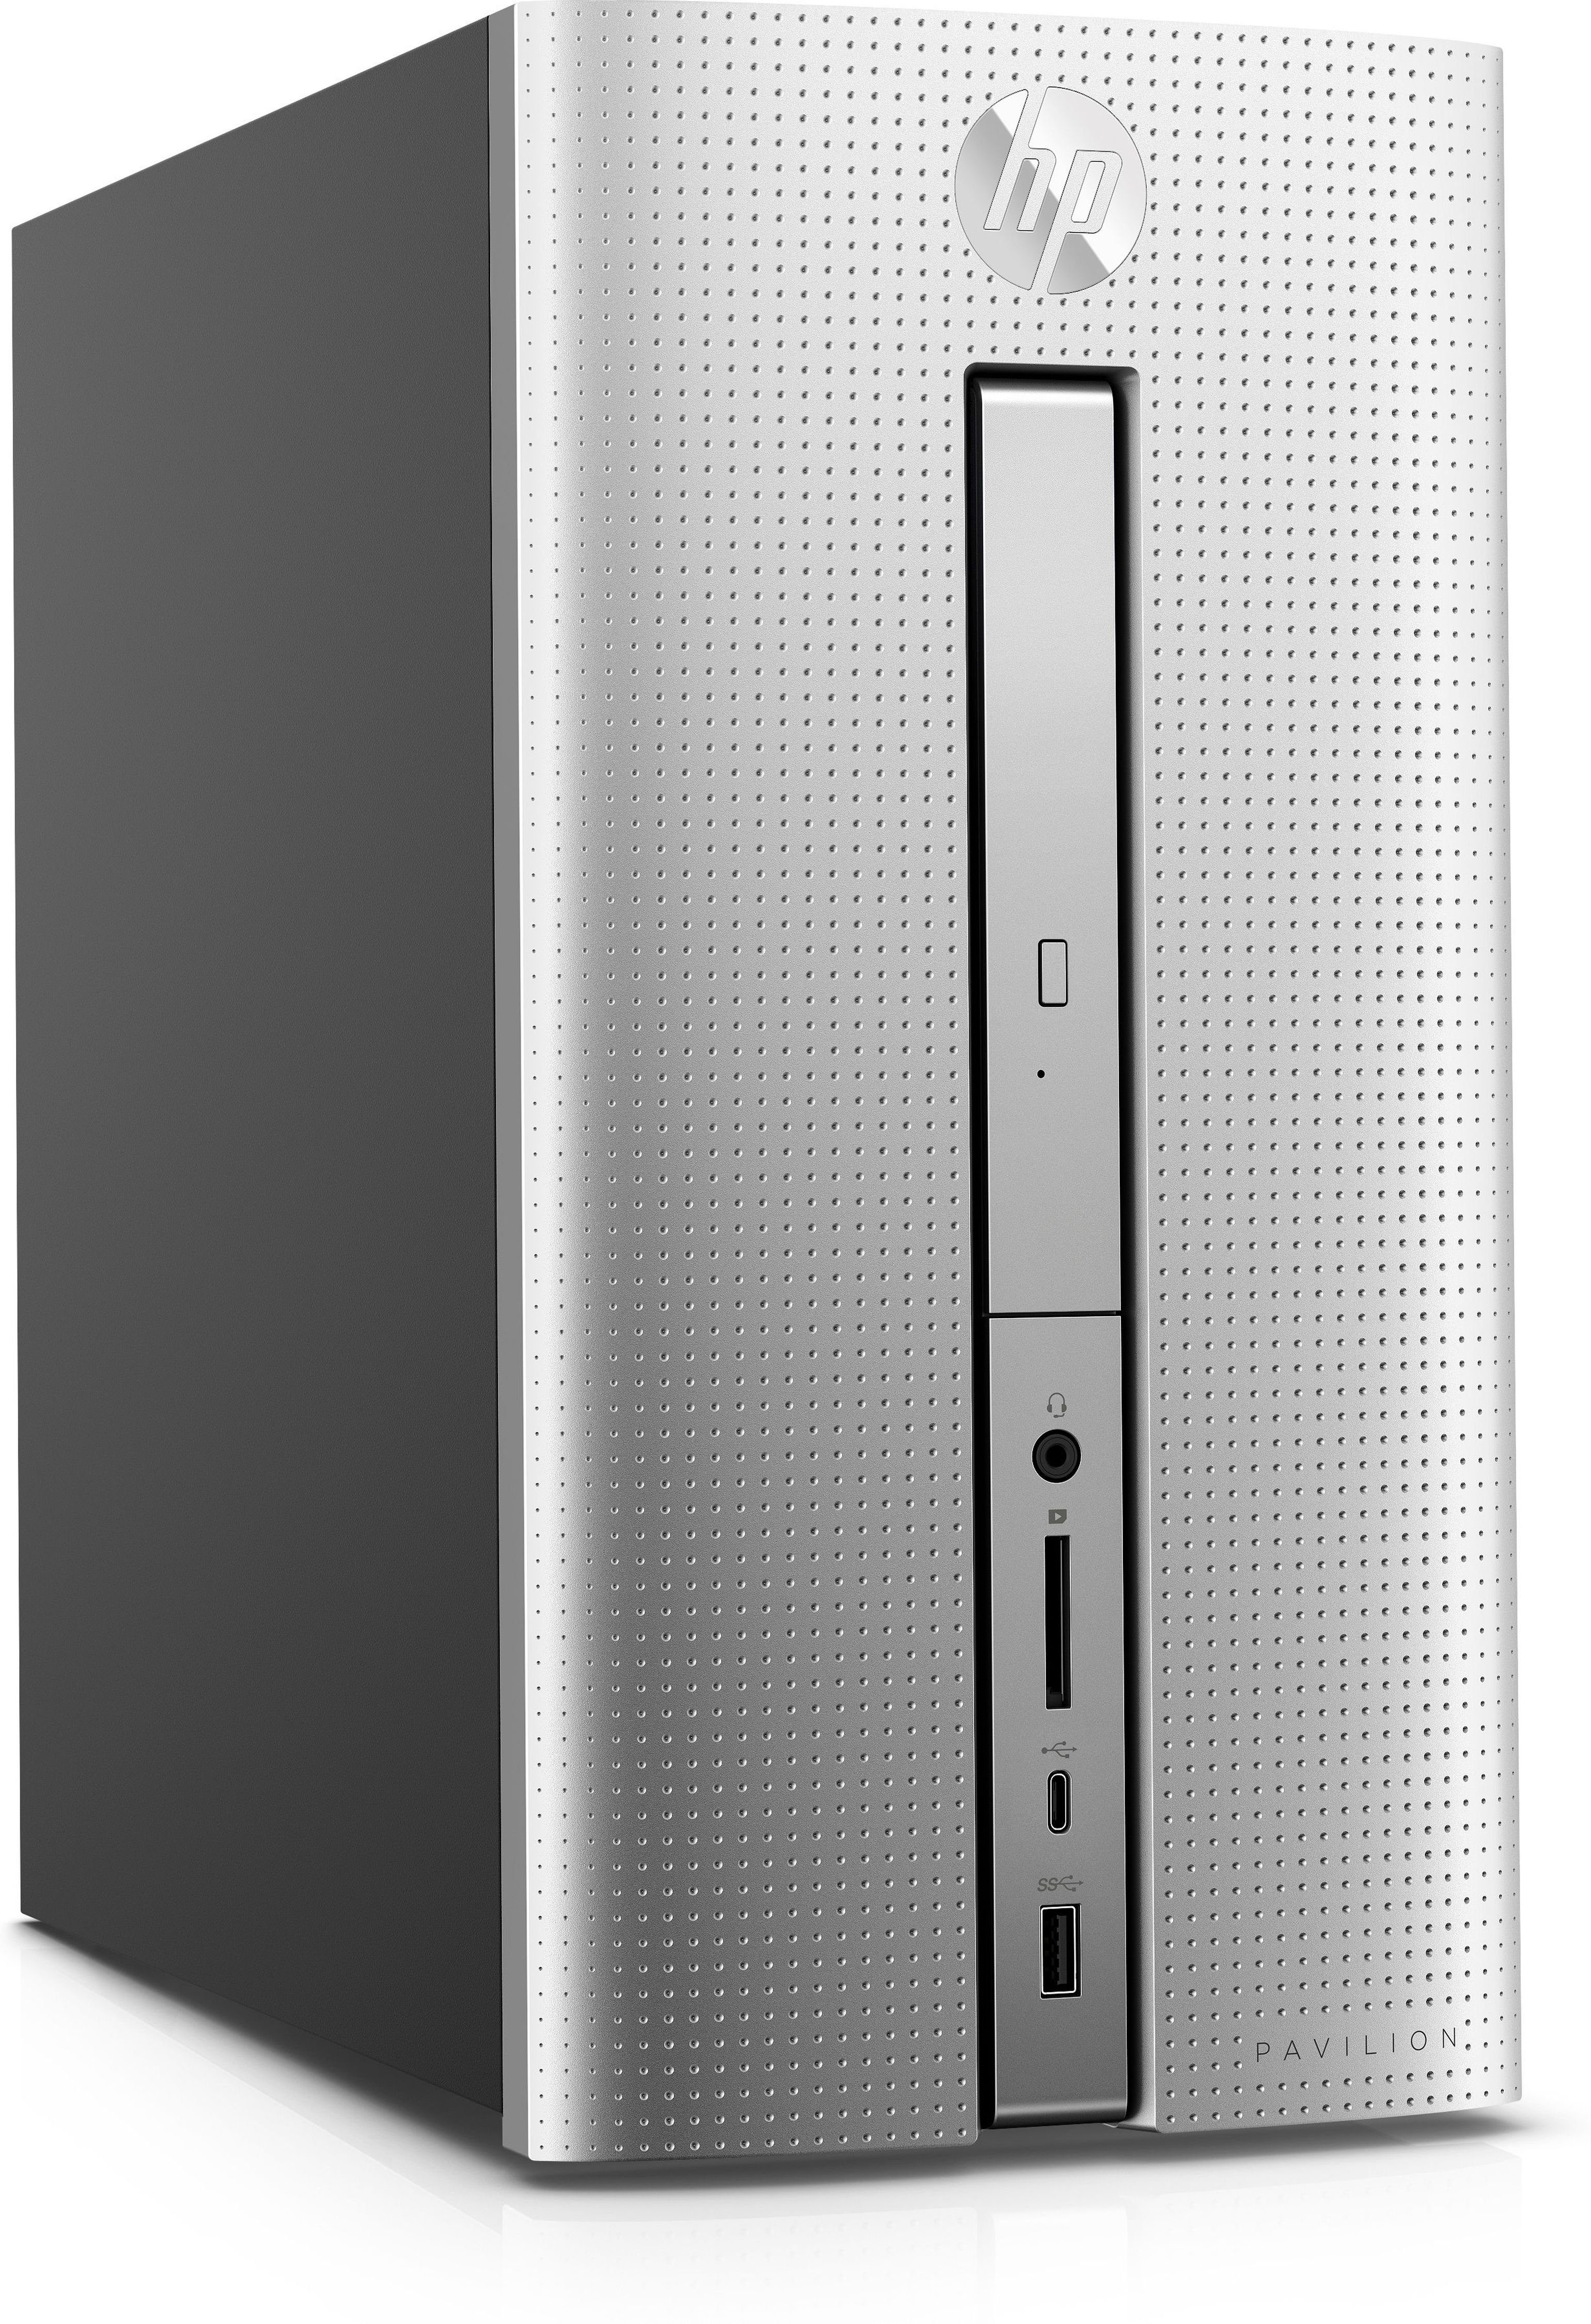 HP Pavilion 570-p581ng Desktop PC »Intel Core i5, 128 GB + 1 TB, 8 GB«